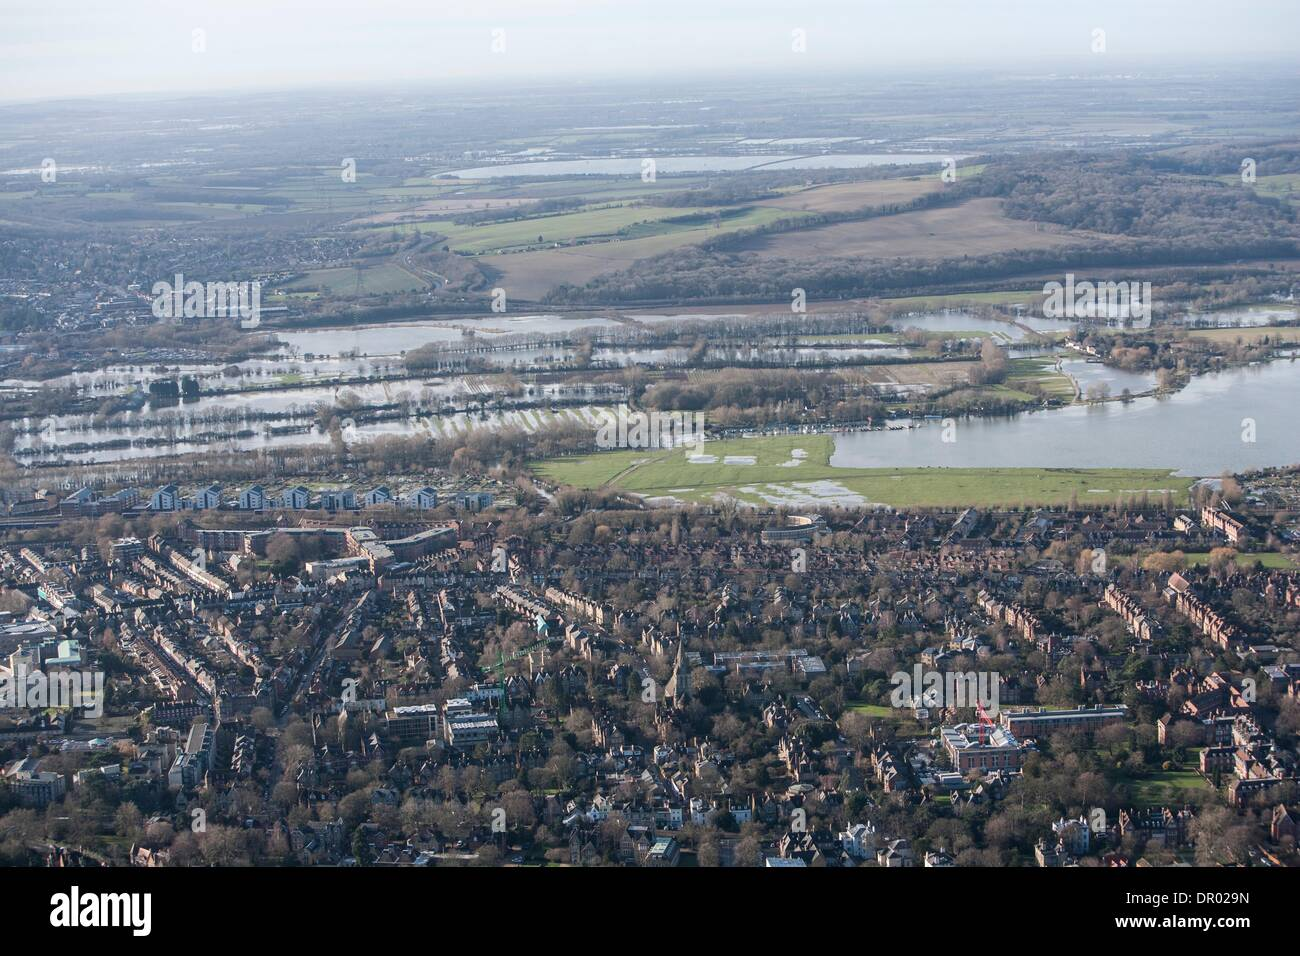 Oxford, UK. 14th January 2014. The  Thames, Oxford in  flood .  View over North Oxford  west  towards Binsey  and the southern edge of  Portmeadow, a natural flood plain.  The controversial University buildings of Roger Dudman Way  can  be seen ( centre left )  along railway lines. Credit:  adrian arbib/Alamy Live News - Stock Image